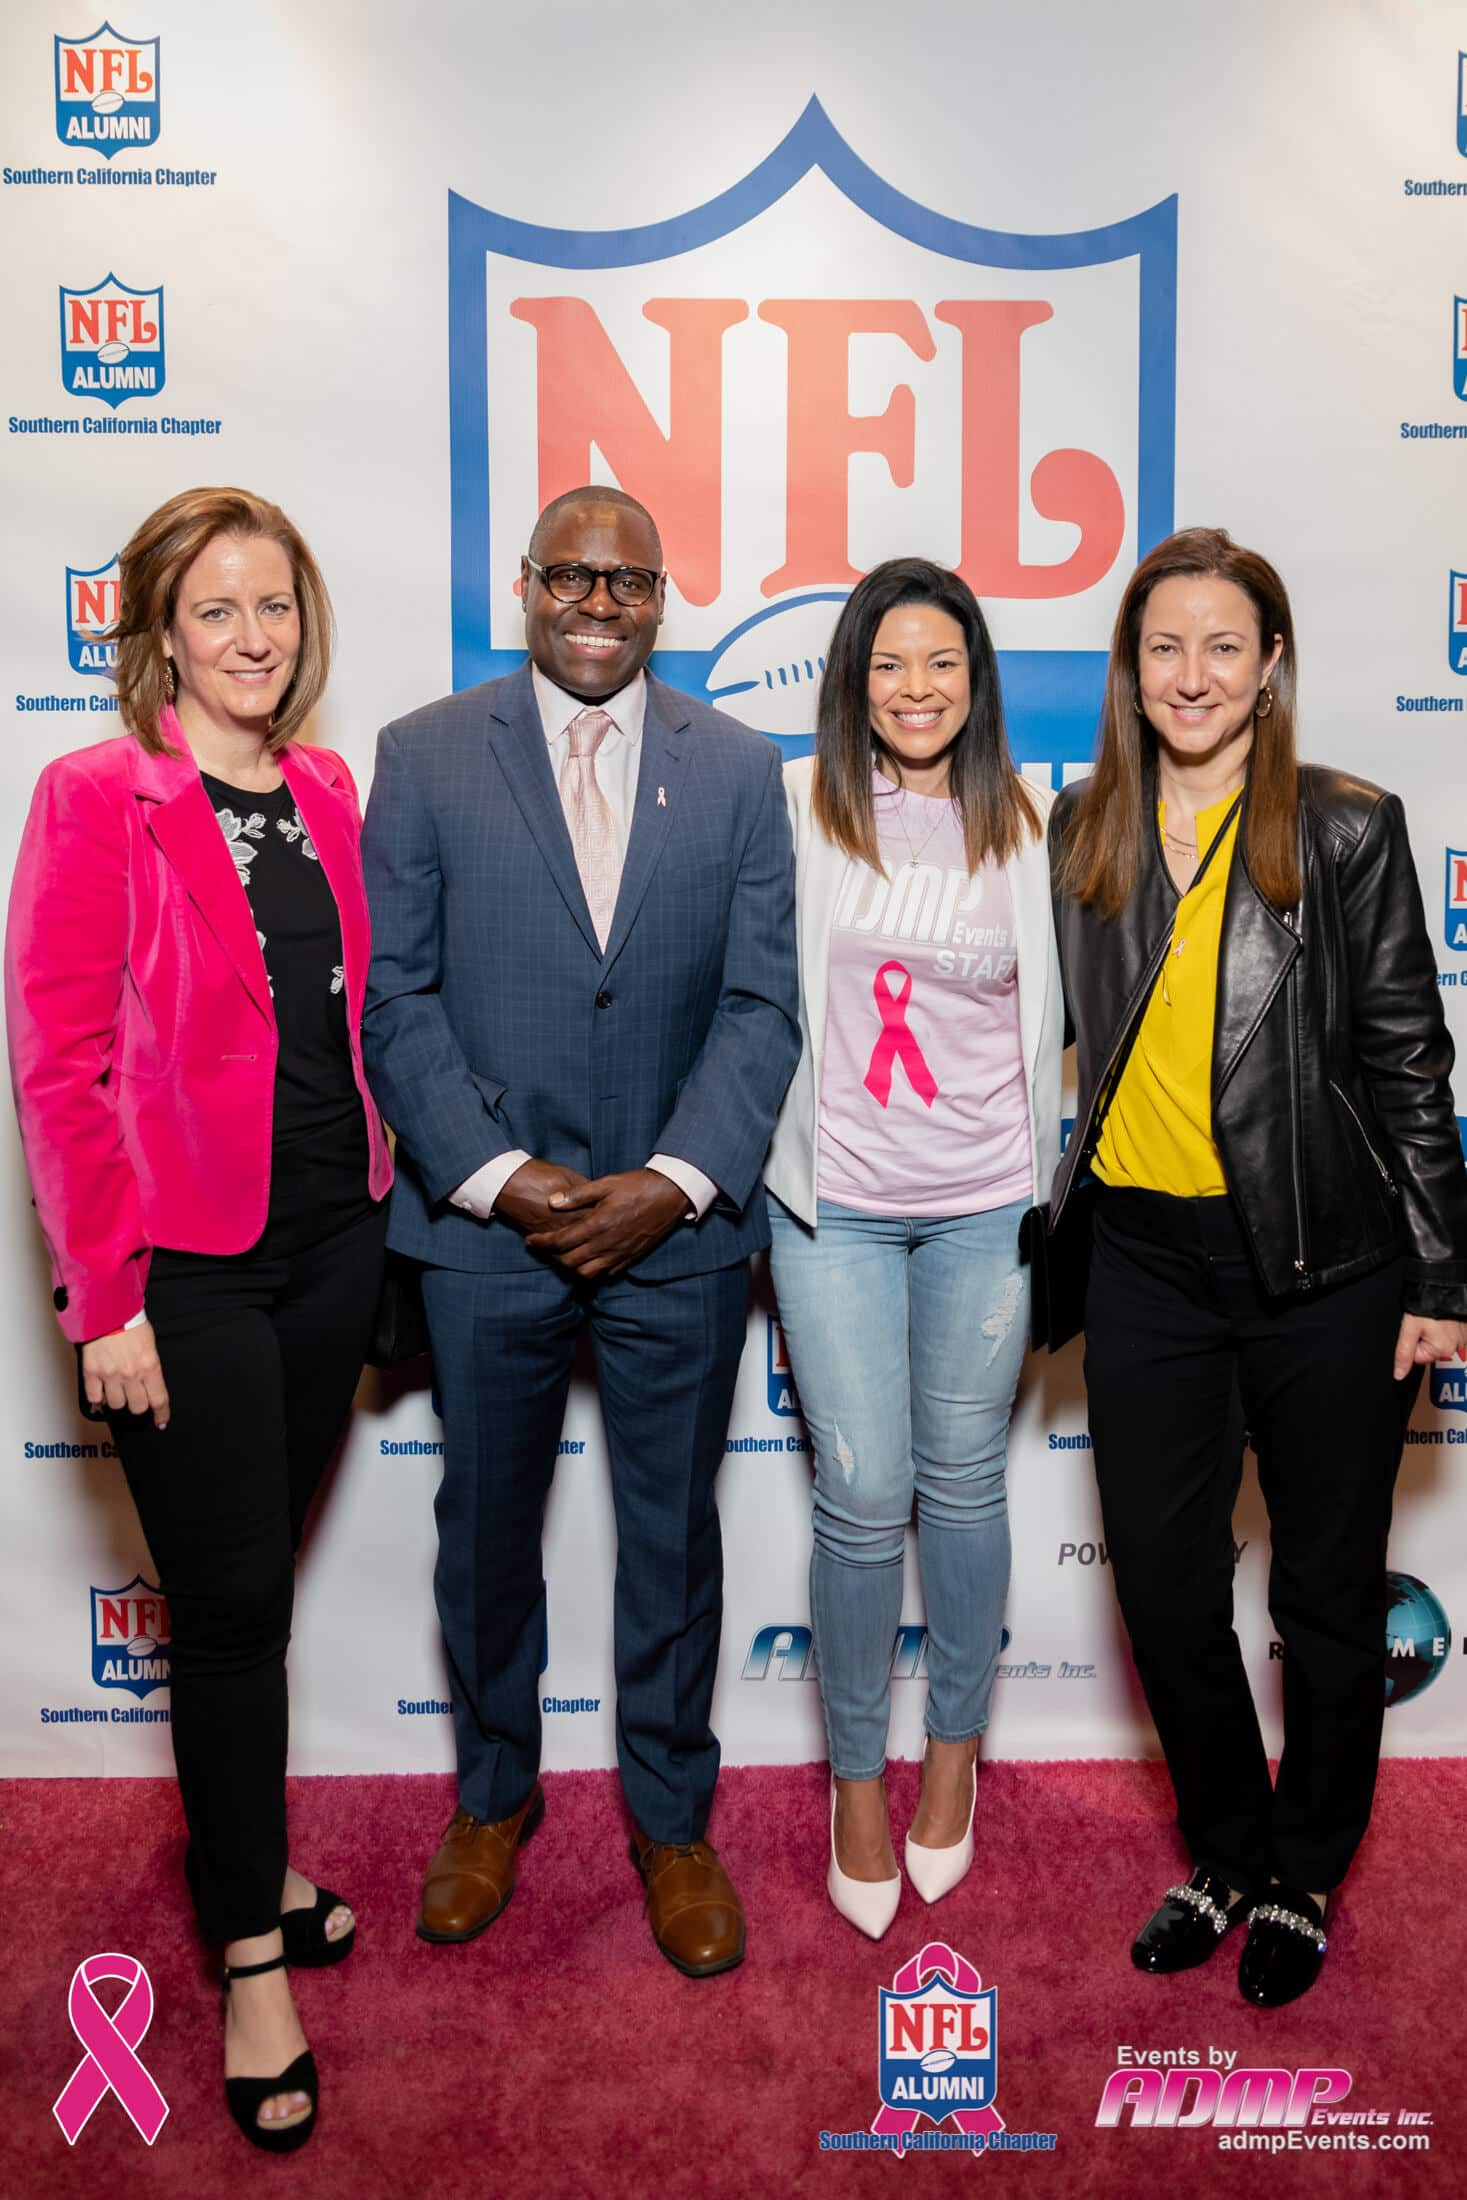 NFL Alumni SoCal Charity Event Series Breast Cancer Event 10-14-19-218